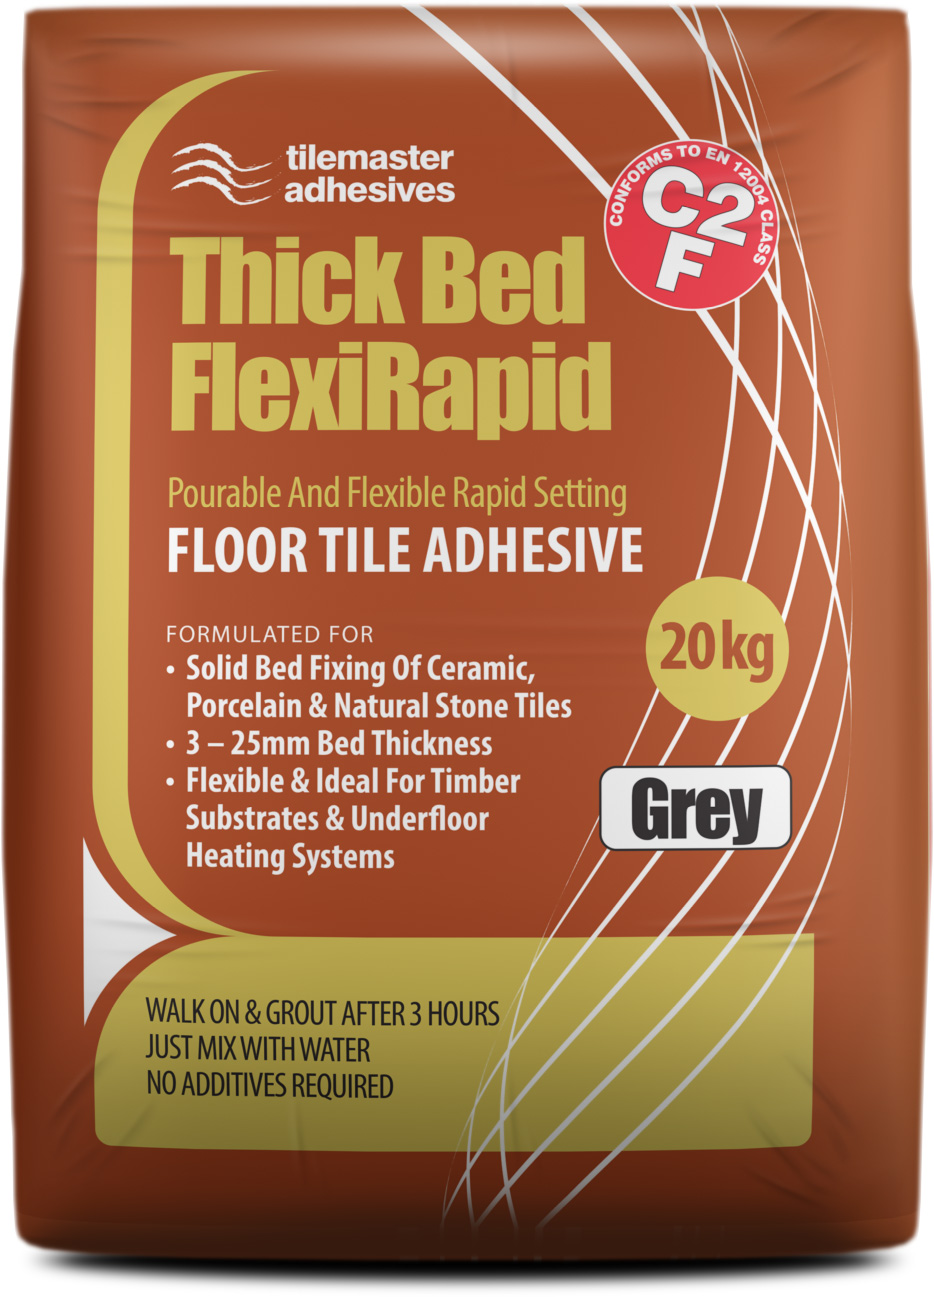 Fast, large-format bonding with Tilemaster Thick Bed FlexiRapid